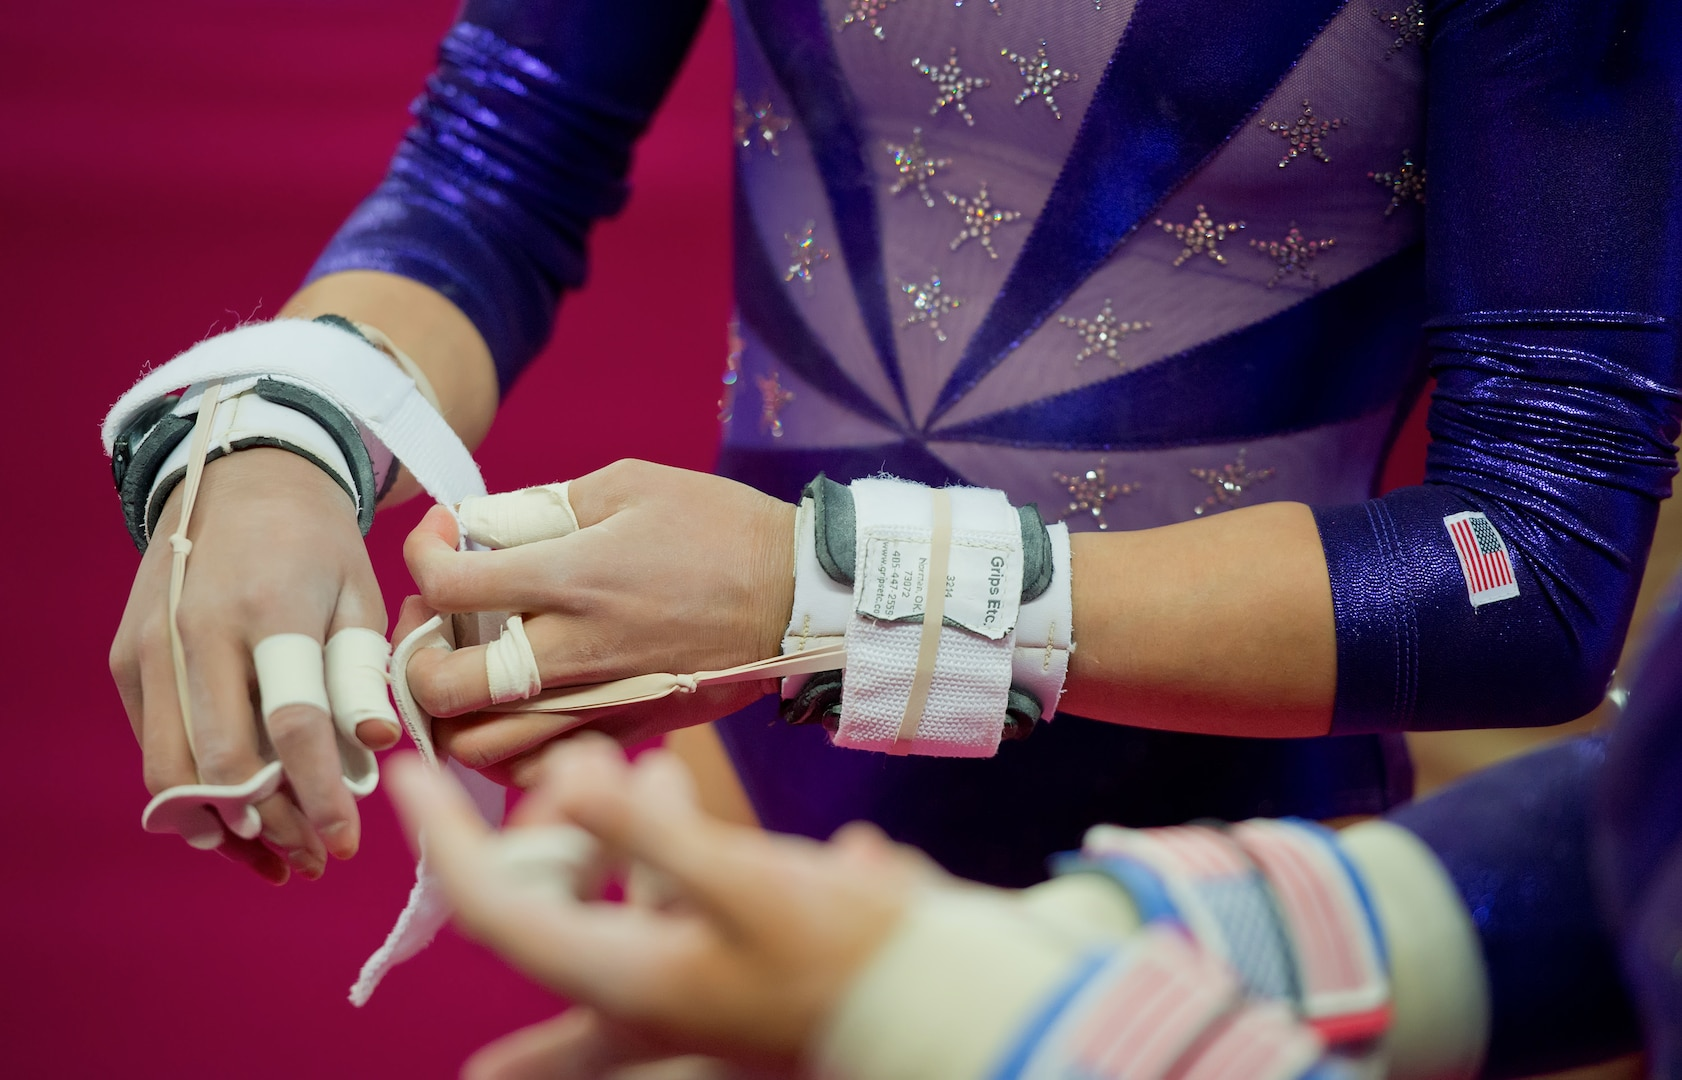 A gymnast adjusts her hand grips in preparation for an uneven bars routine.